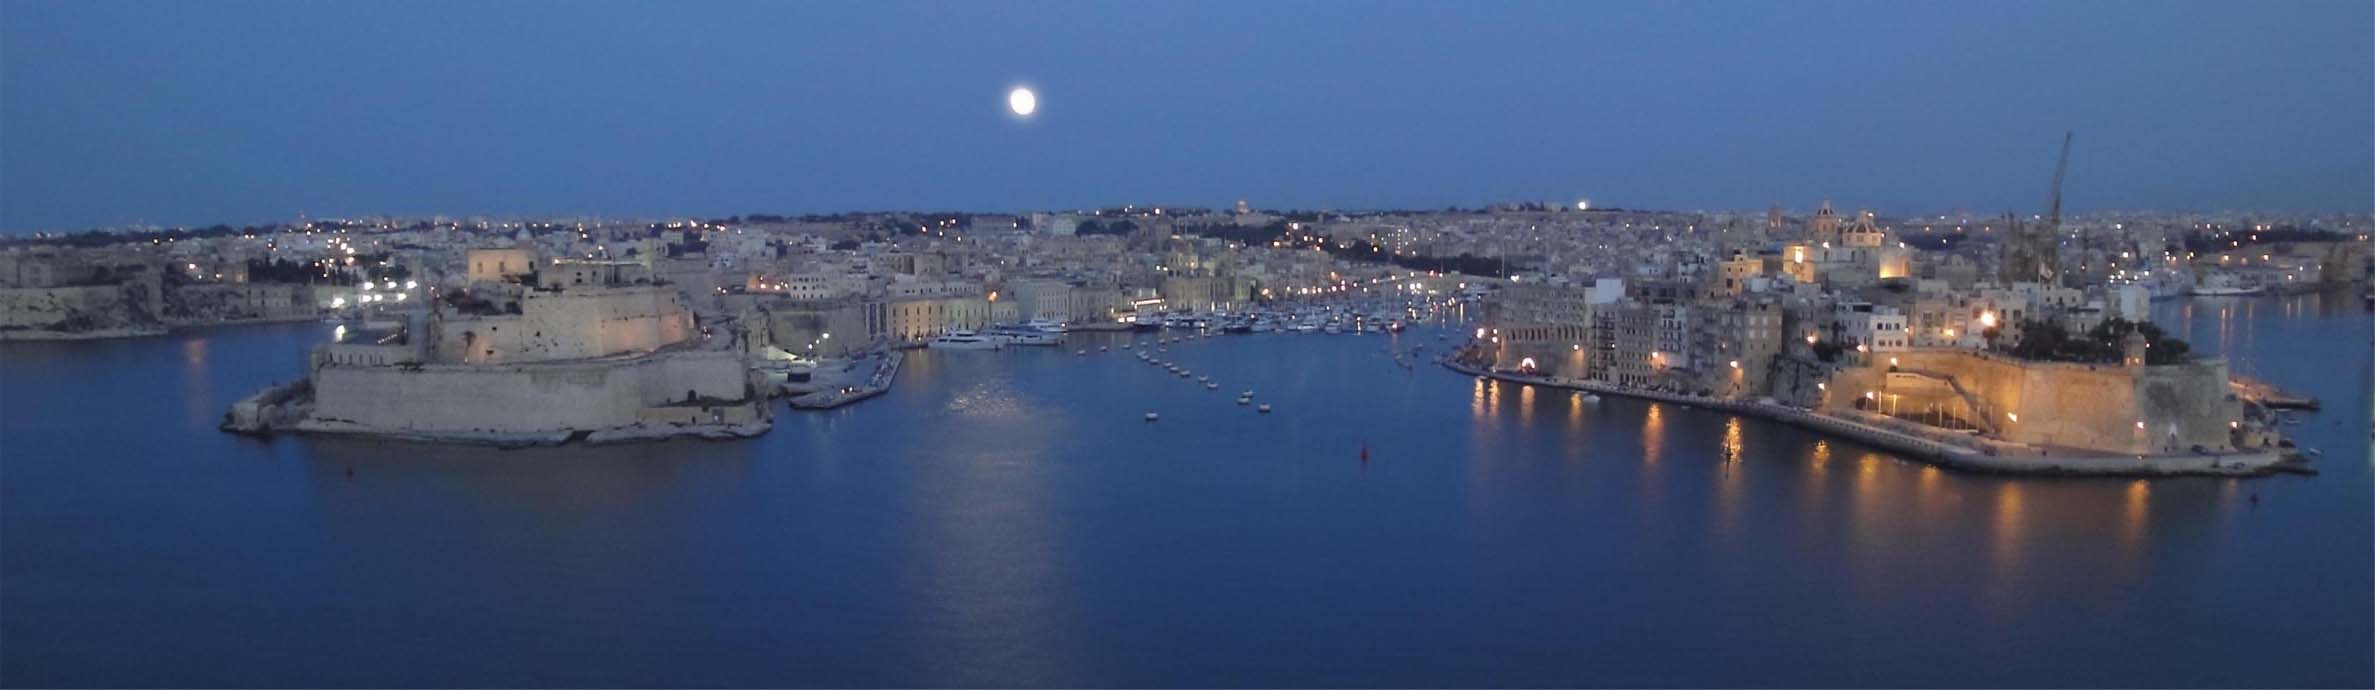 Grand Harbour, Malta